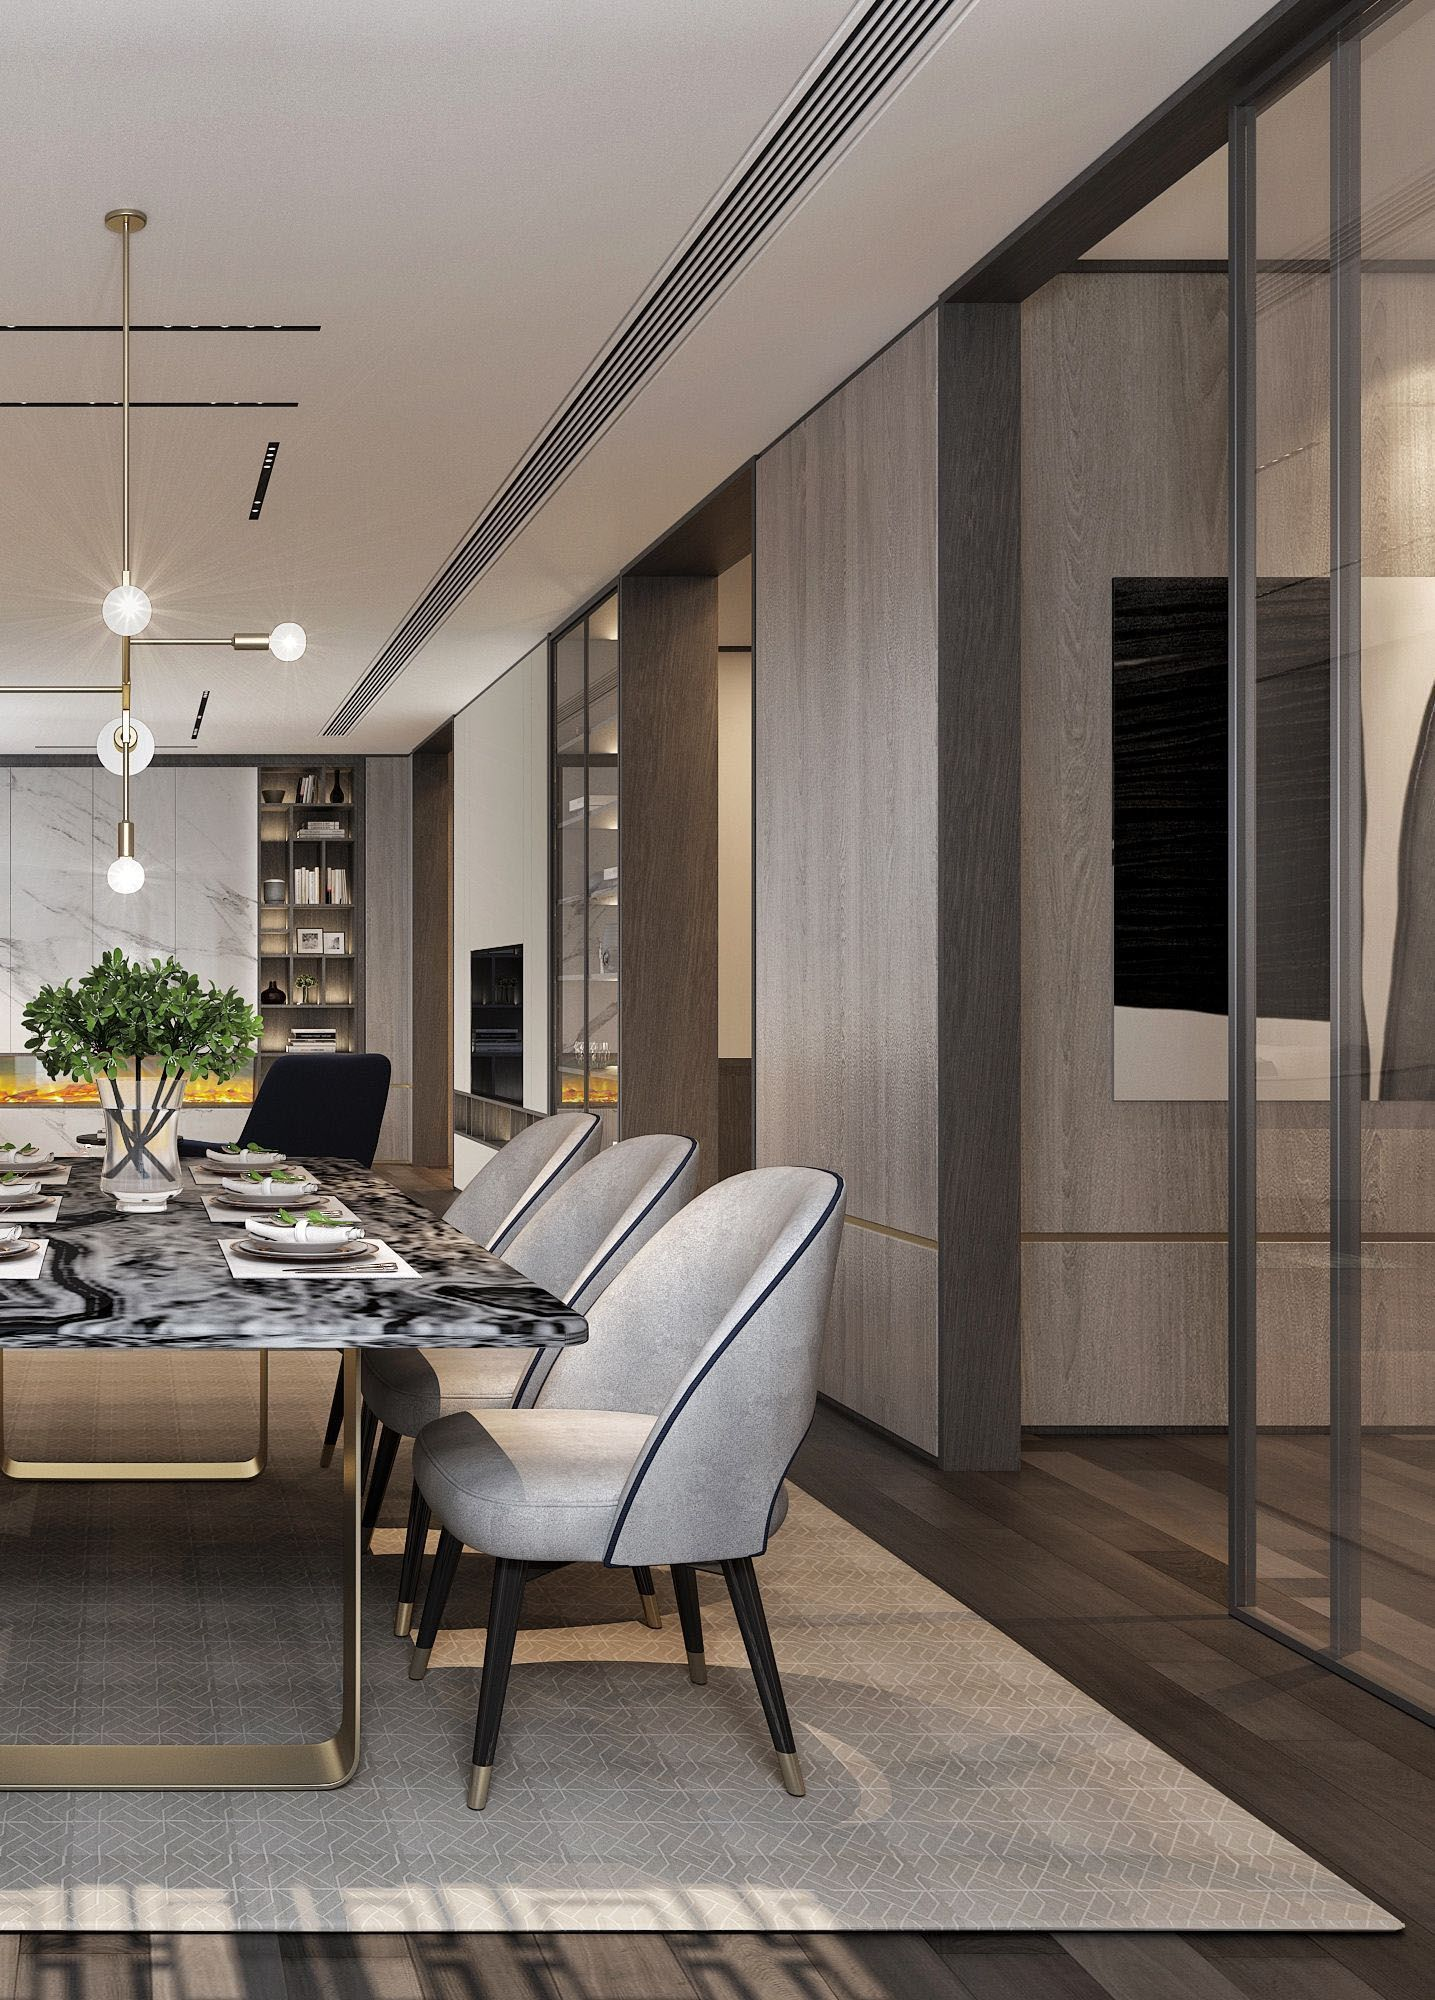 Wonderful Dining Room Tables Greenville Sc For Your Cozy Home Luxury Dining Room Dining Room Contemporary Dining Room Design Modern dining room tables